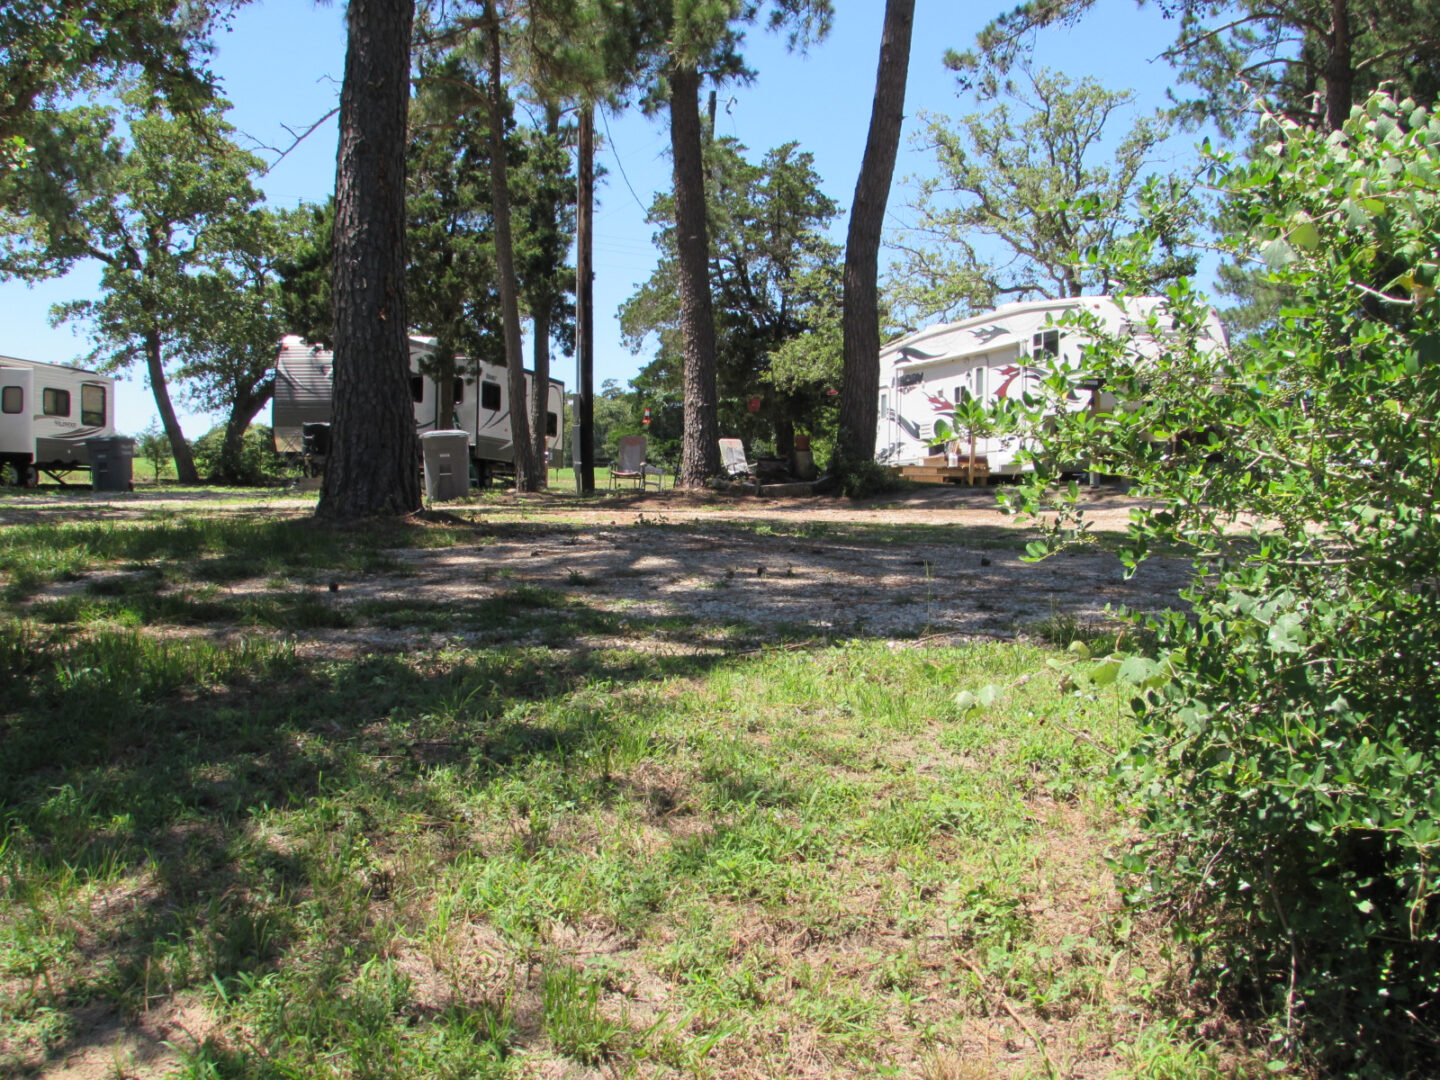 A field for recreational vehicle parking